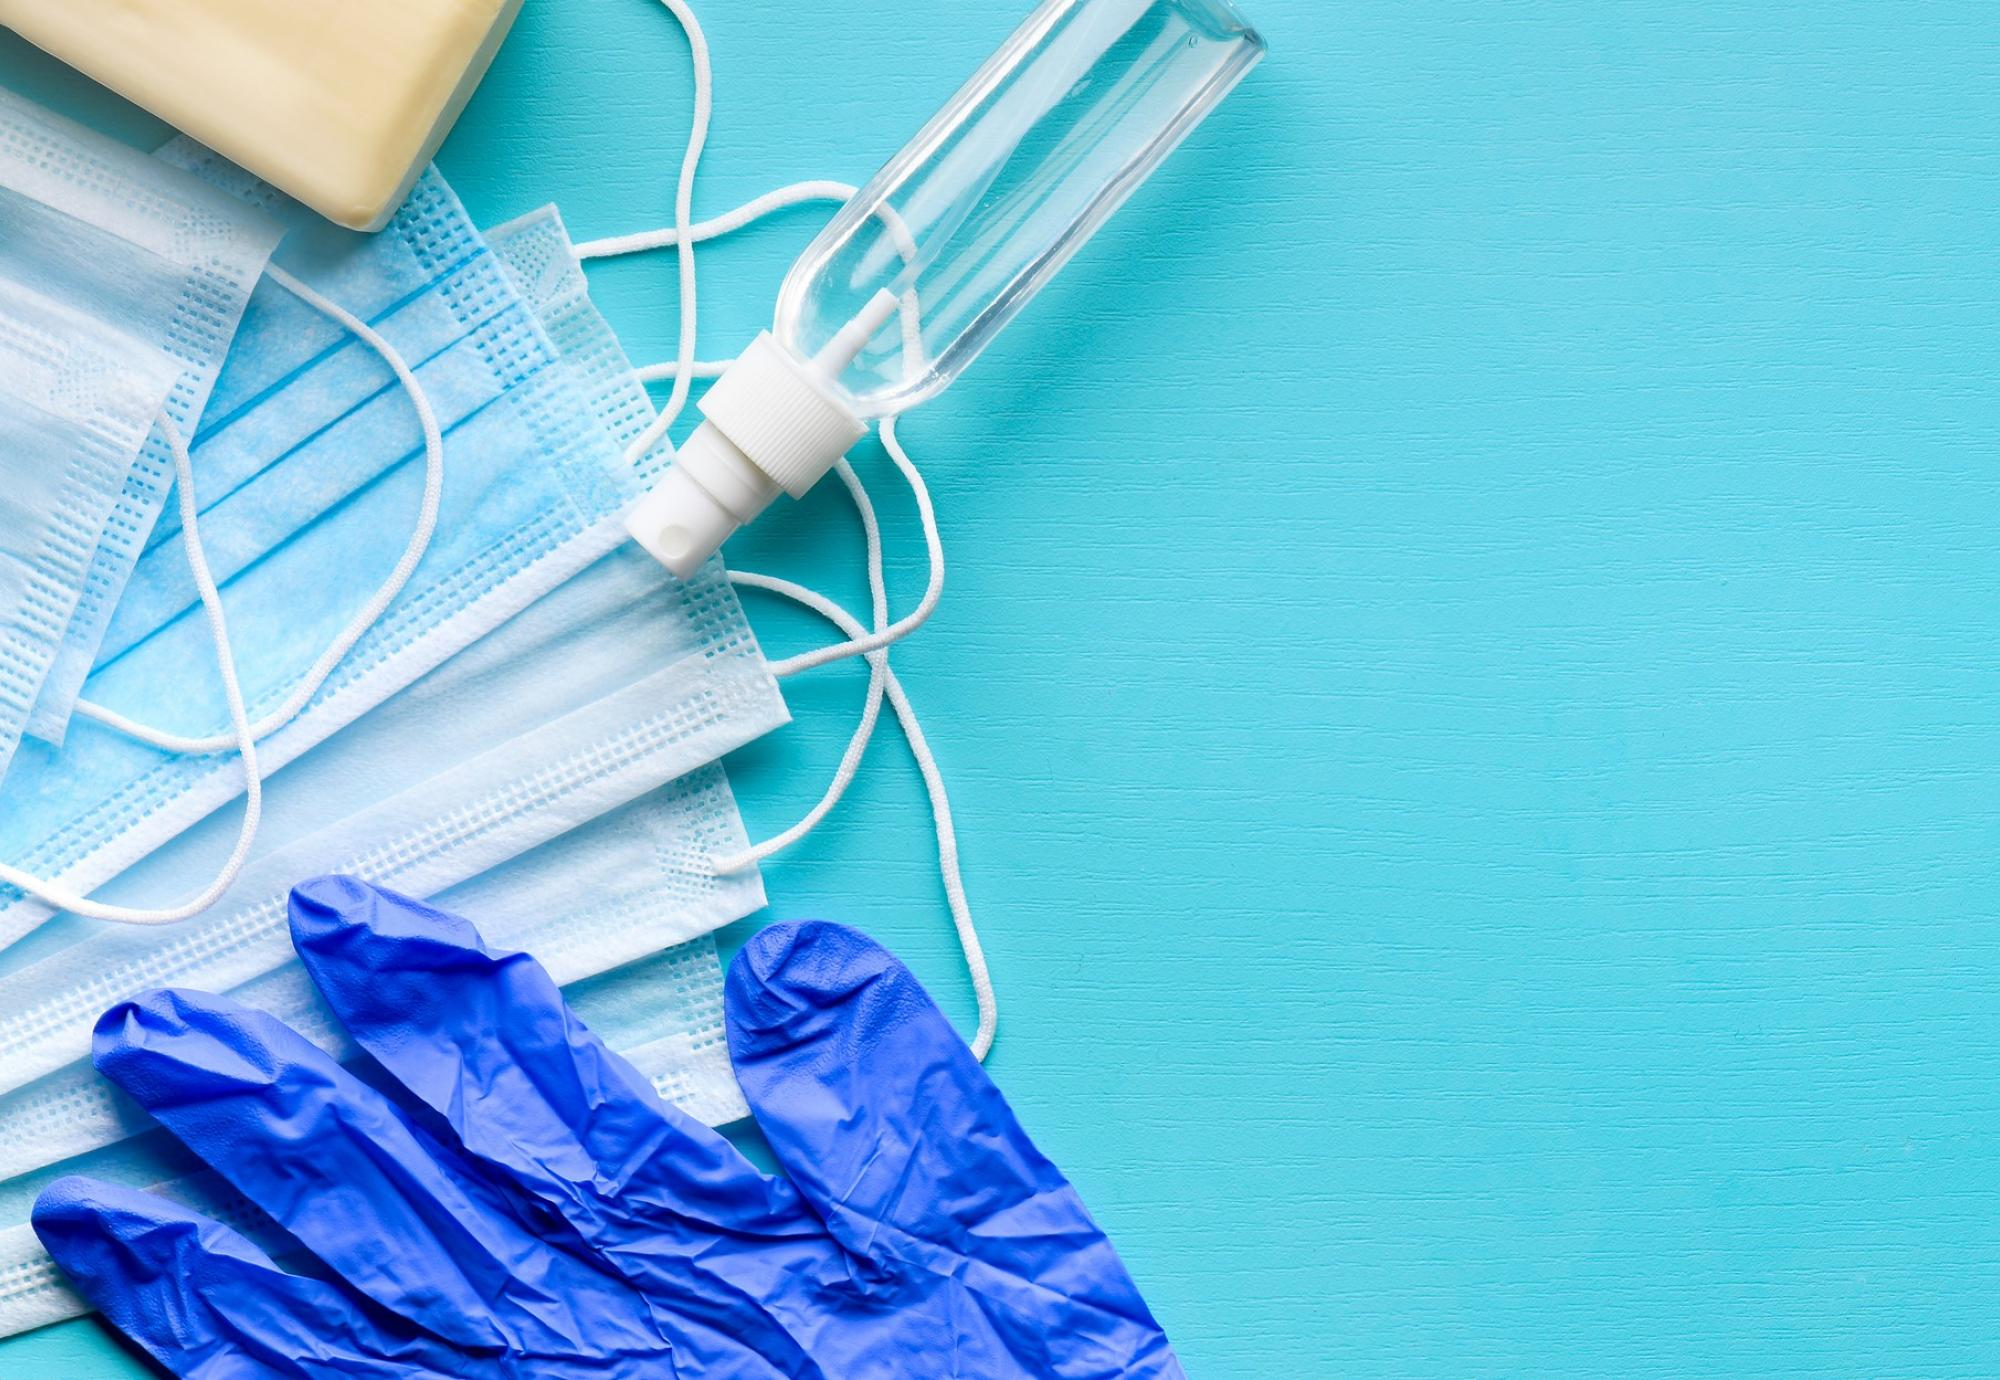 Assortment of PPE goods against a blue background